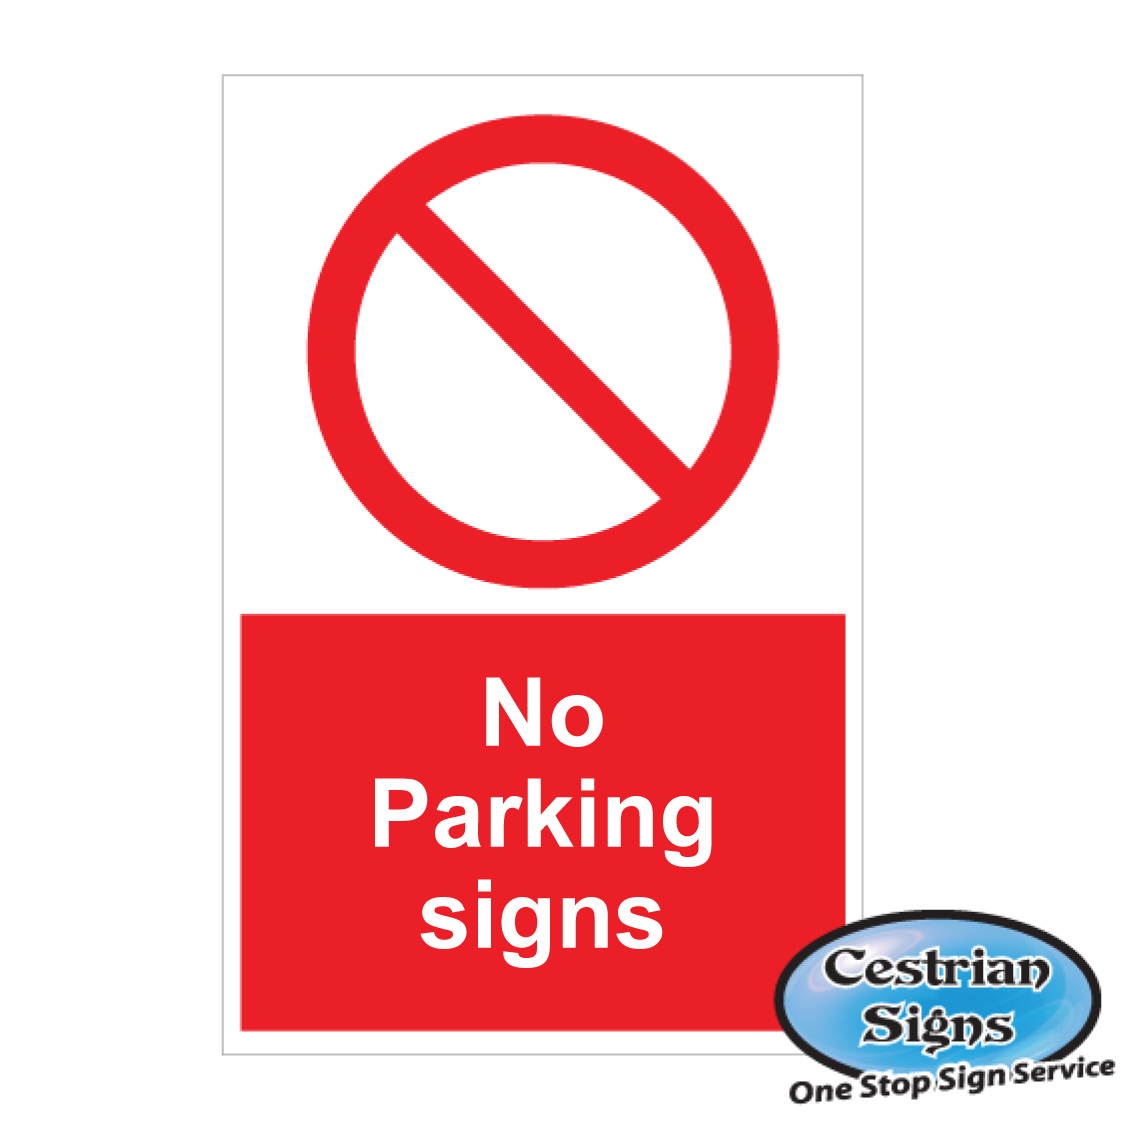 PARKING PROHIBITION SITE SIGNS